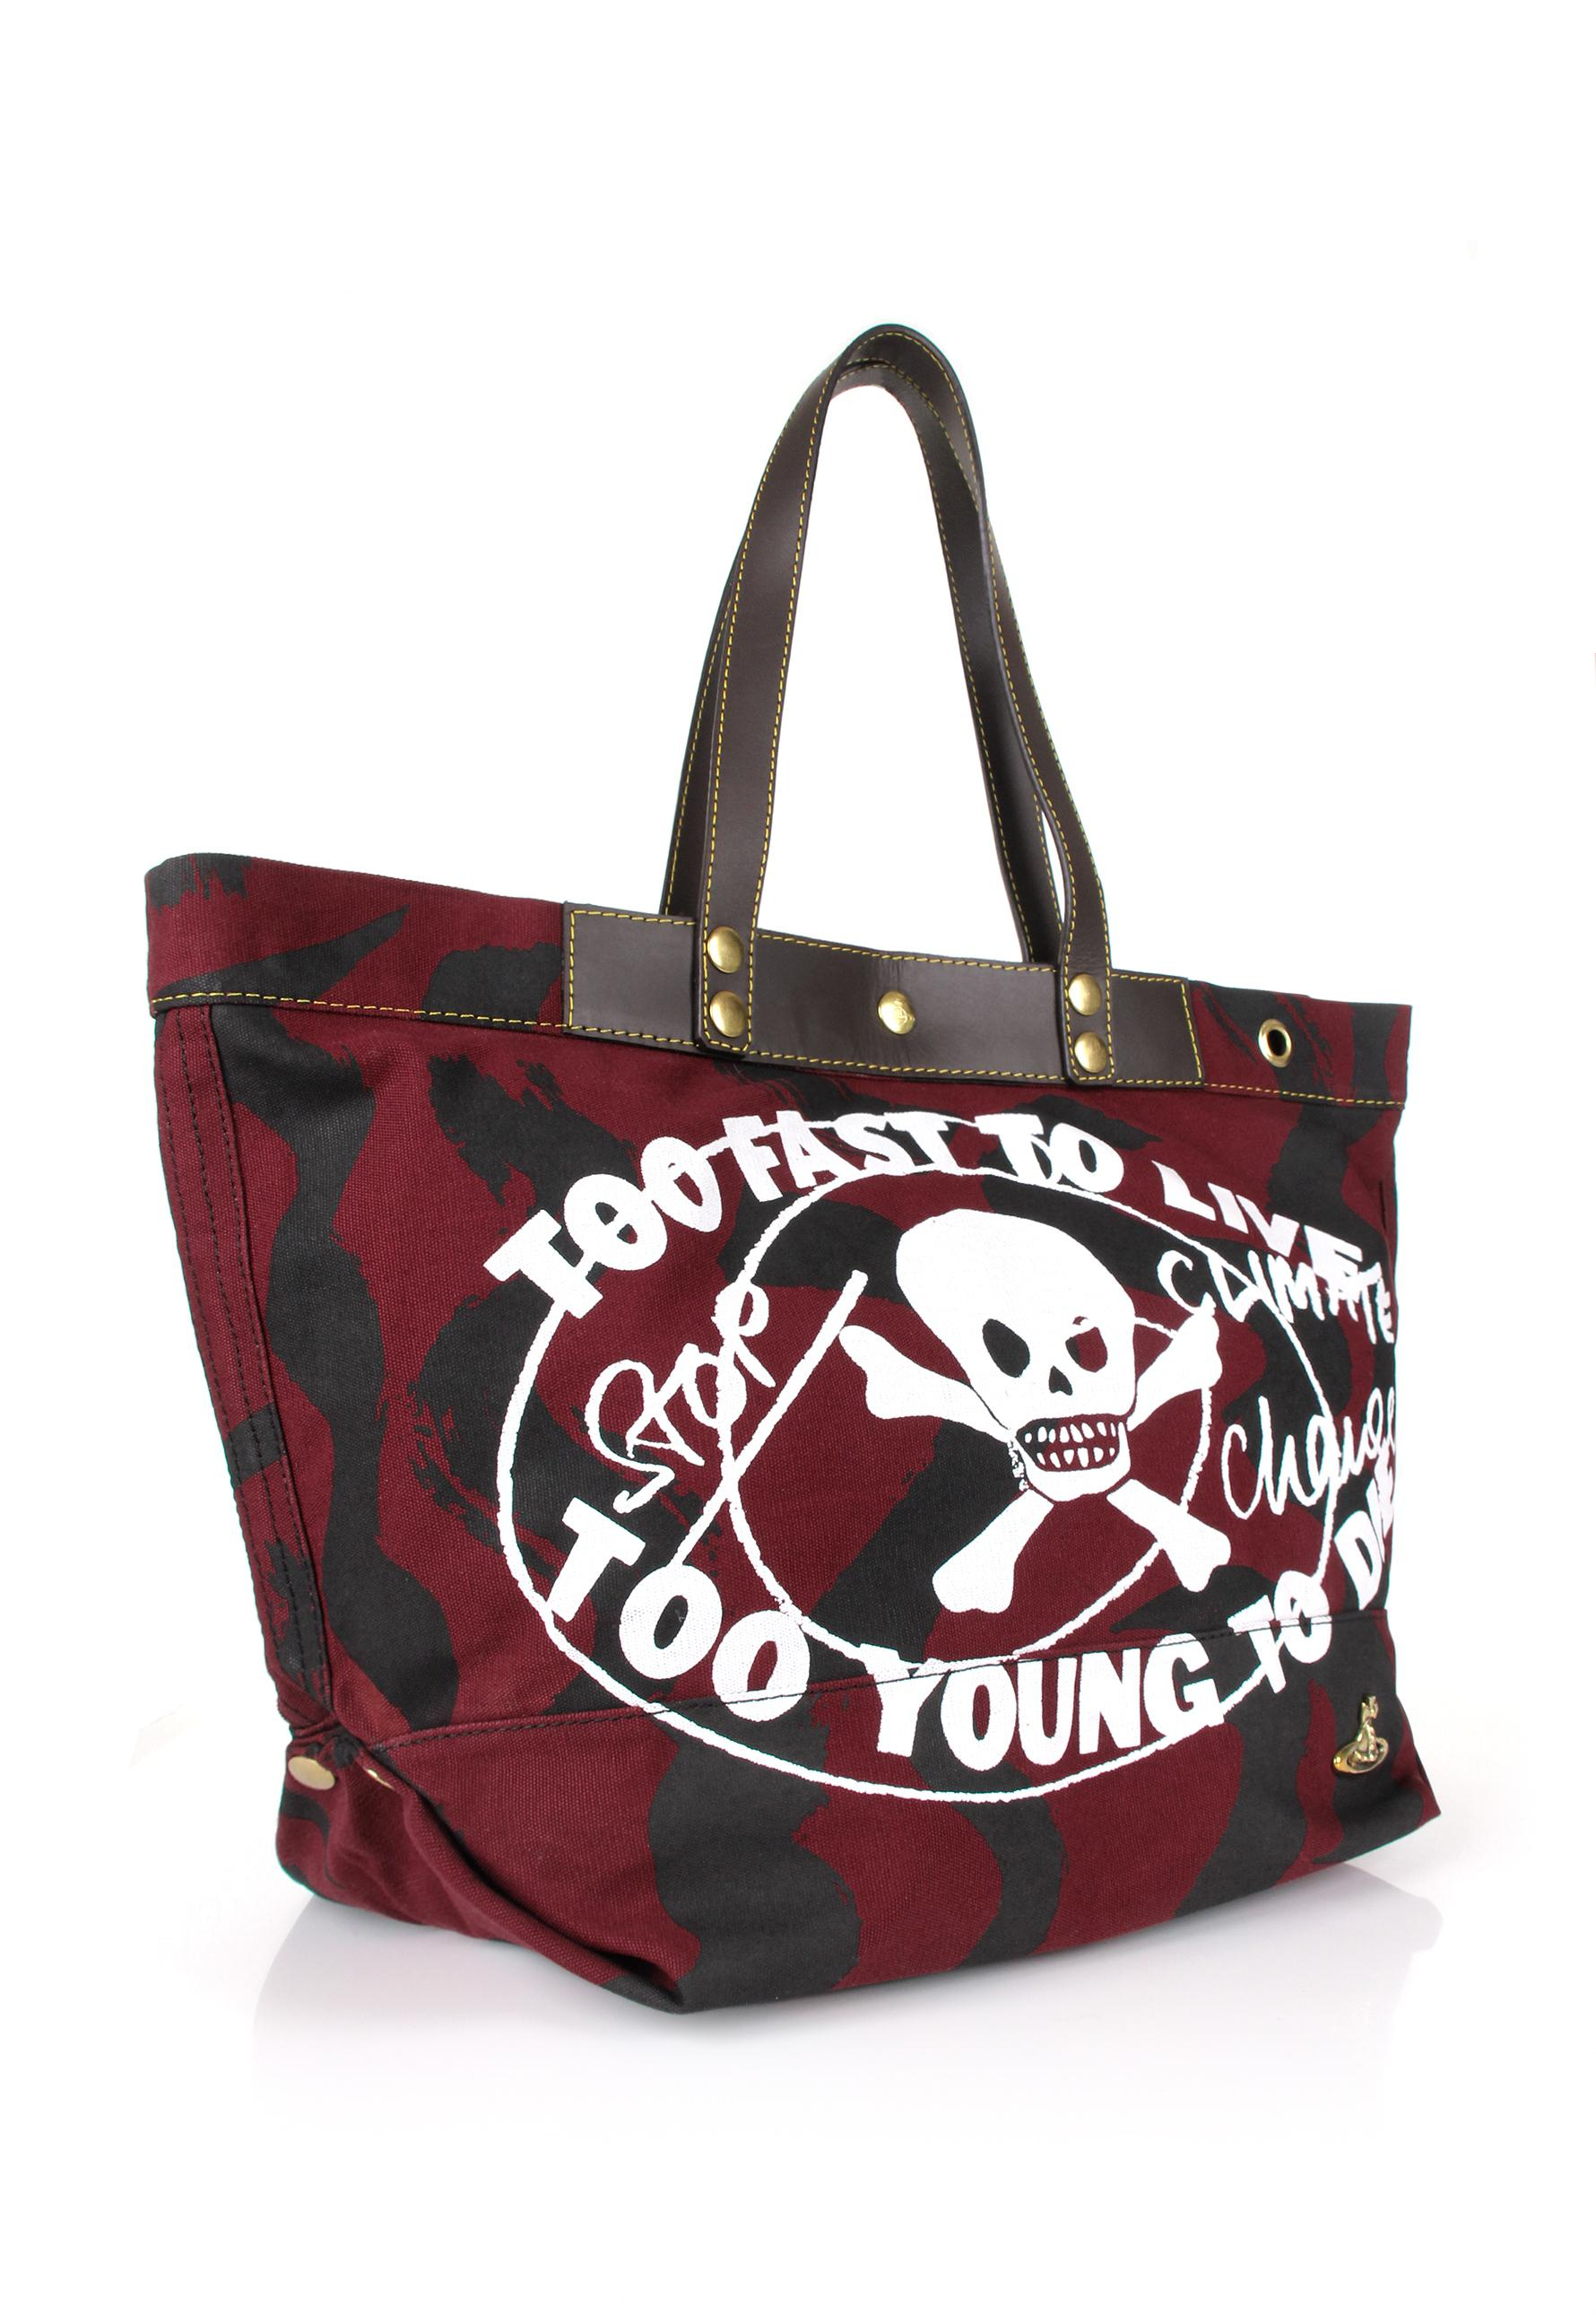 13e7d3f981 Lyst - Vivienne Westwood Too Fast To Live Shopper Red black in Red